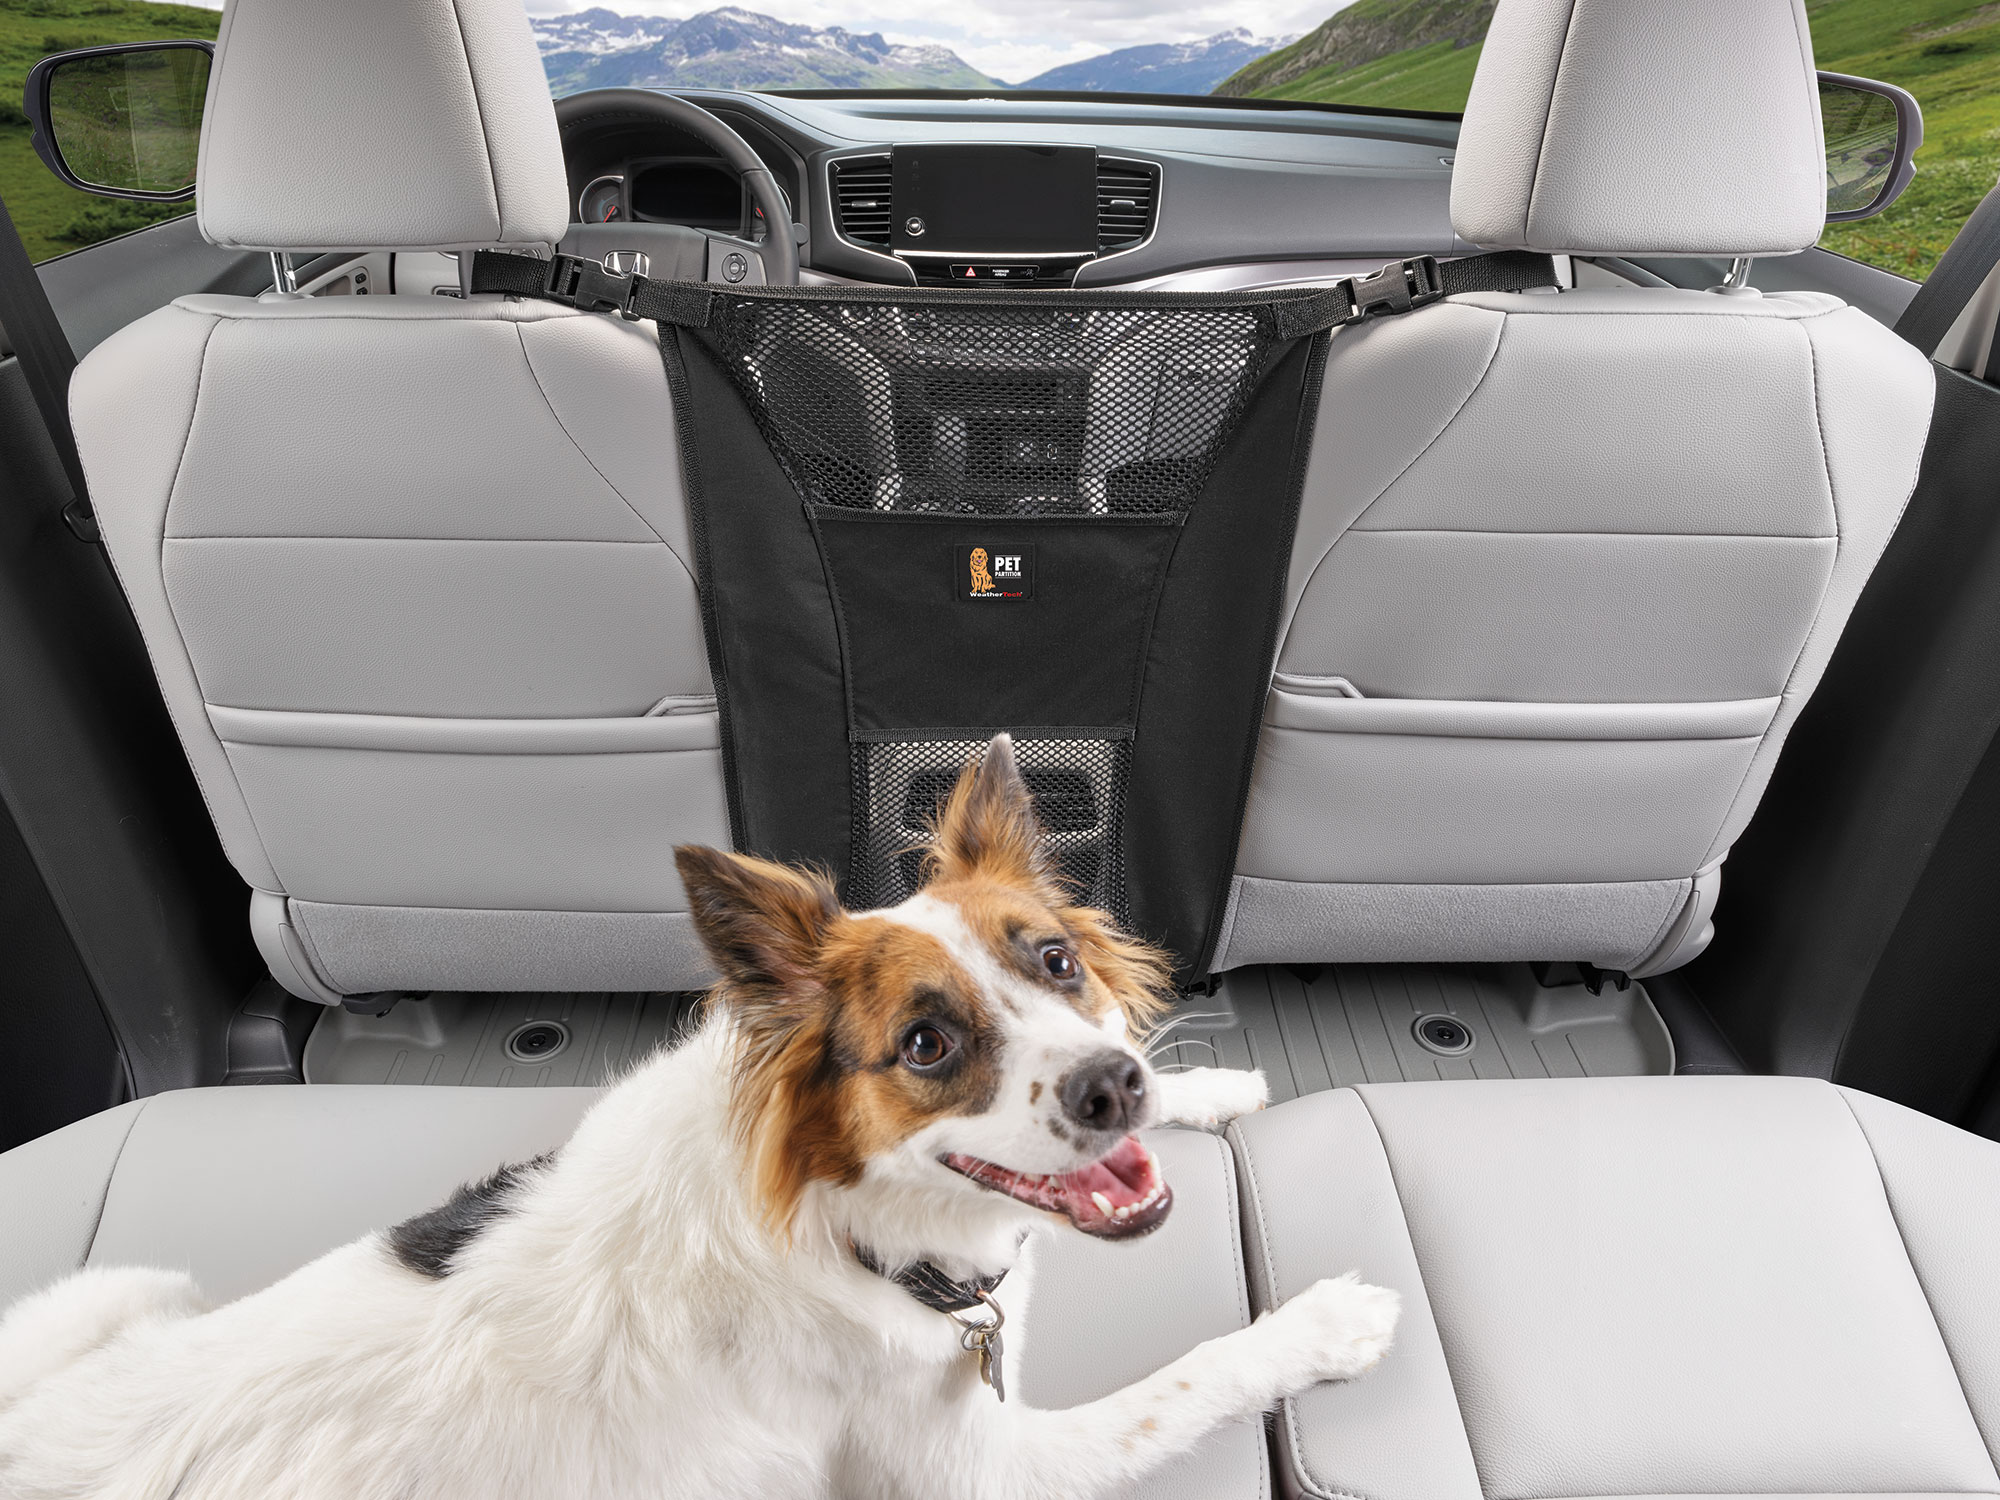 Pet Partition installed in an SUV, with a dog secured in the back-seat. This mesh dog barrier is perfect for cars, trucks or SUVs.